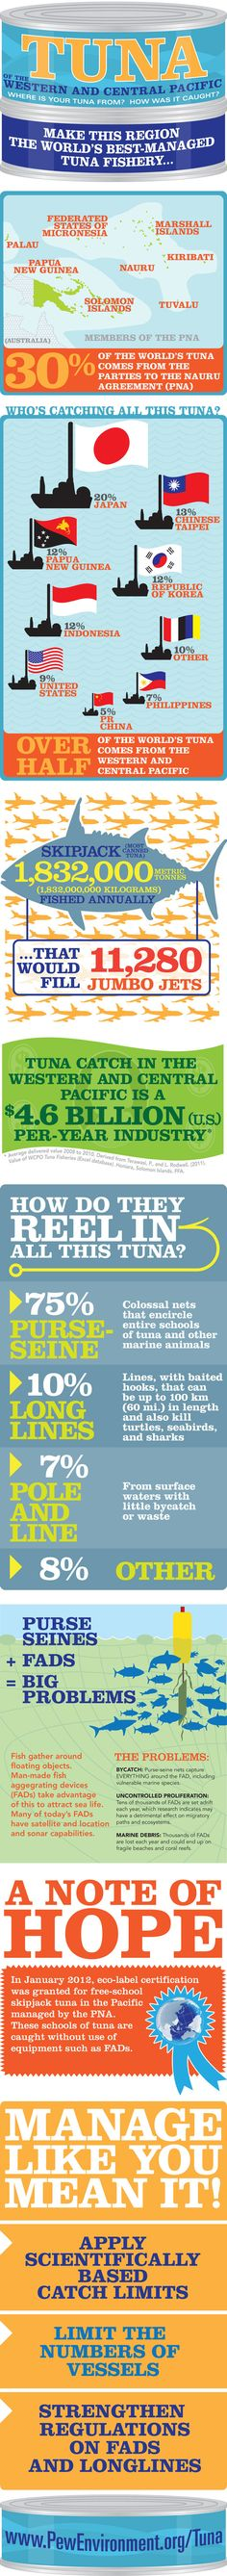 Fantastic Infographic about Tuna of the Western and Central Pacific.  Did you know Rare is about to start working in 11 sites throughout Micronesia? Fish Forever!